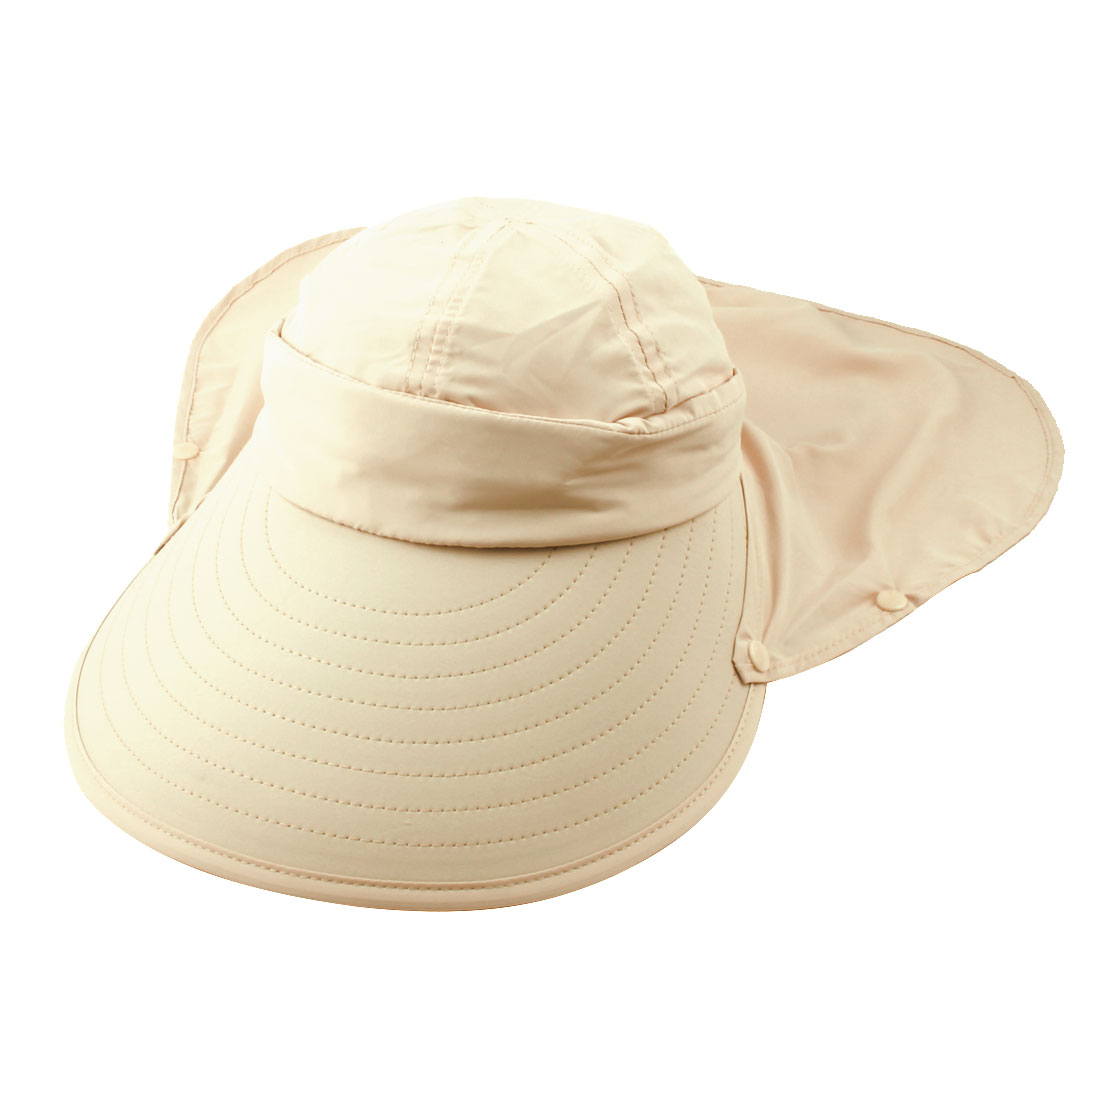 Lady Outdoor Summer Cotton Blends Wide Brim Face Neck Cover Sun Visor Protector Hat Beige